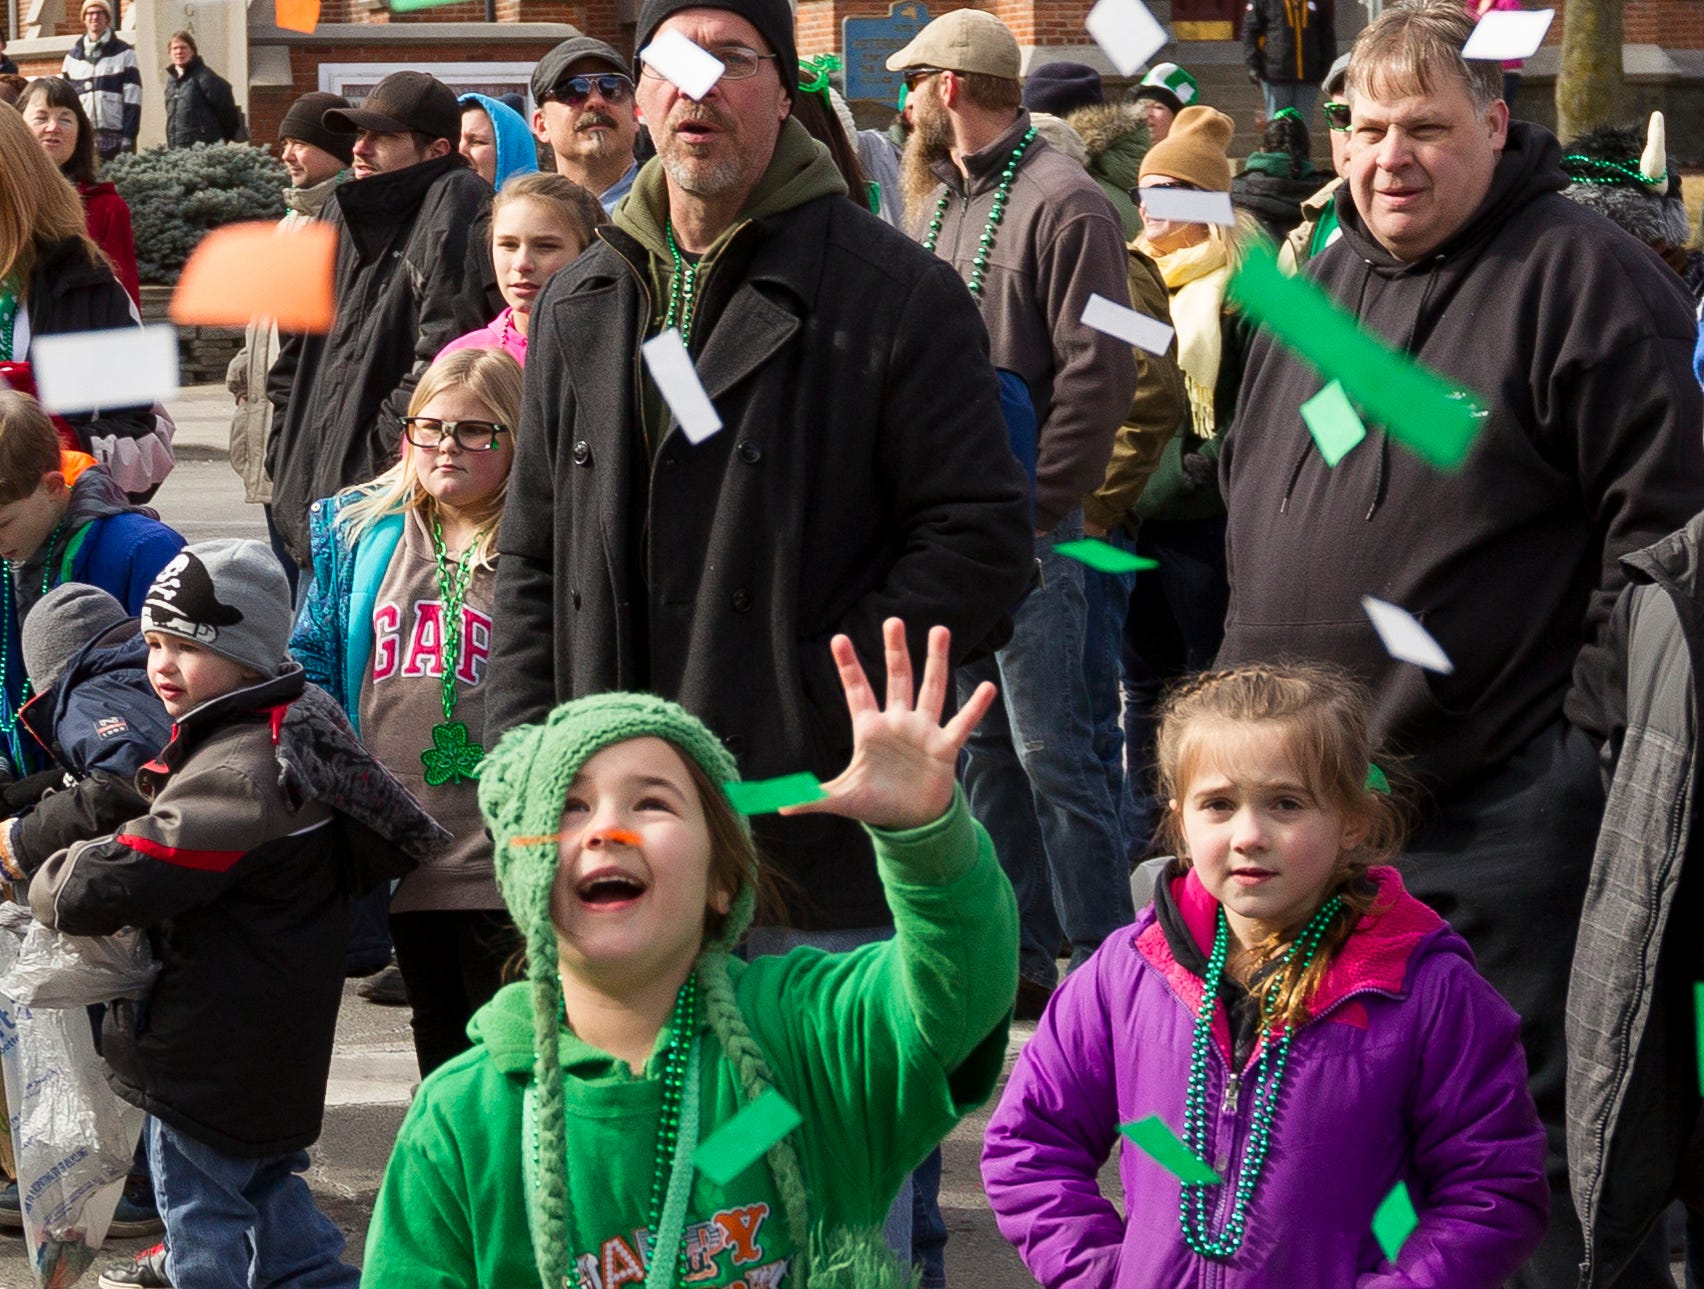 2016: Confetti from the St. Patrick's Church floats down on the spectators Saturday at Binghamton's 49th annual St. Patrick's Day Parade  on Court Street near Front Street.